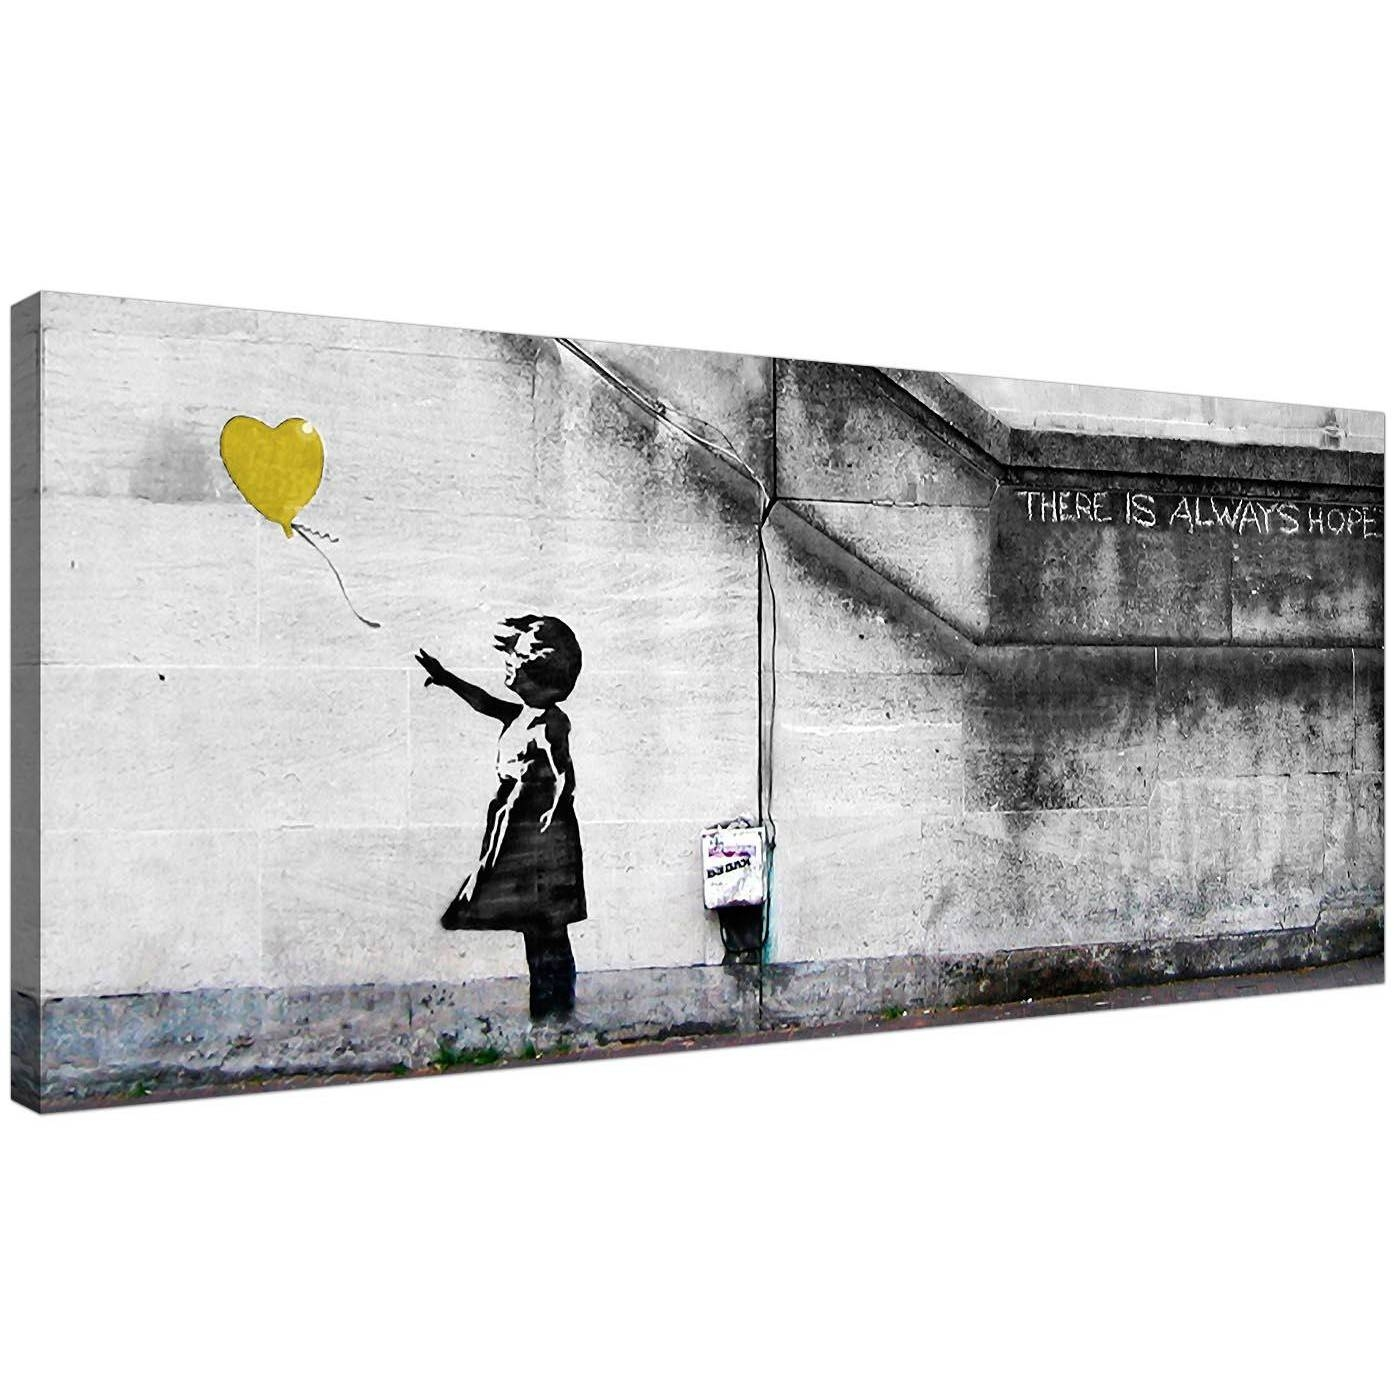 Cheap Yellow Canvas Art Of Banksy Balloon Girl For 2017 Large Yellow Wall Art (View 6 of 20)